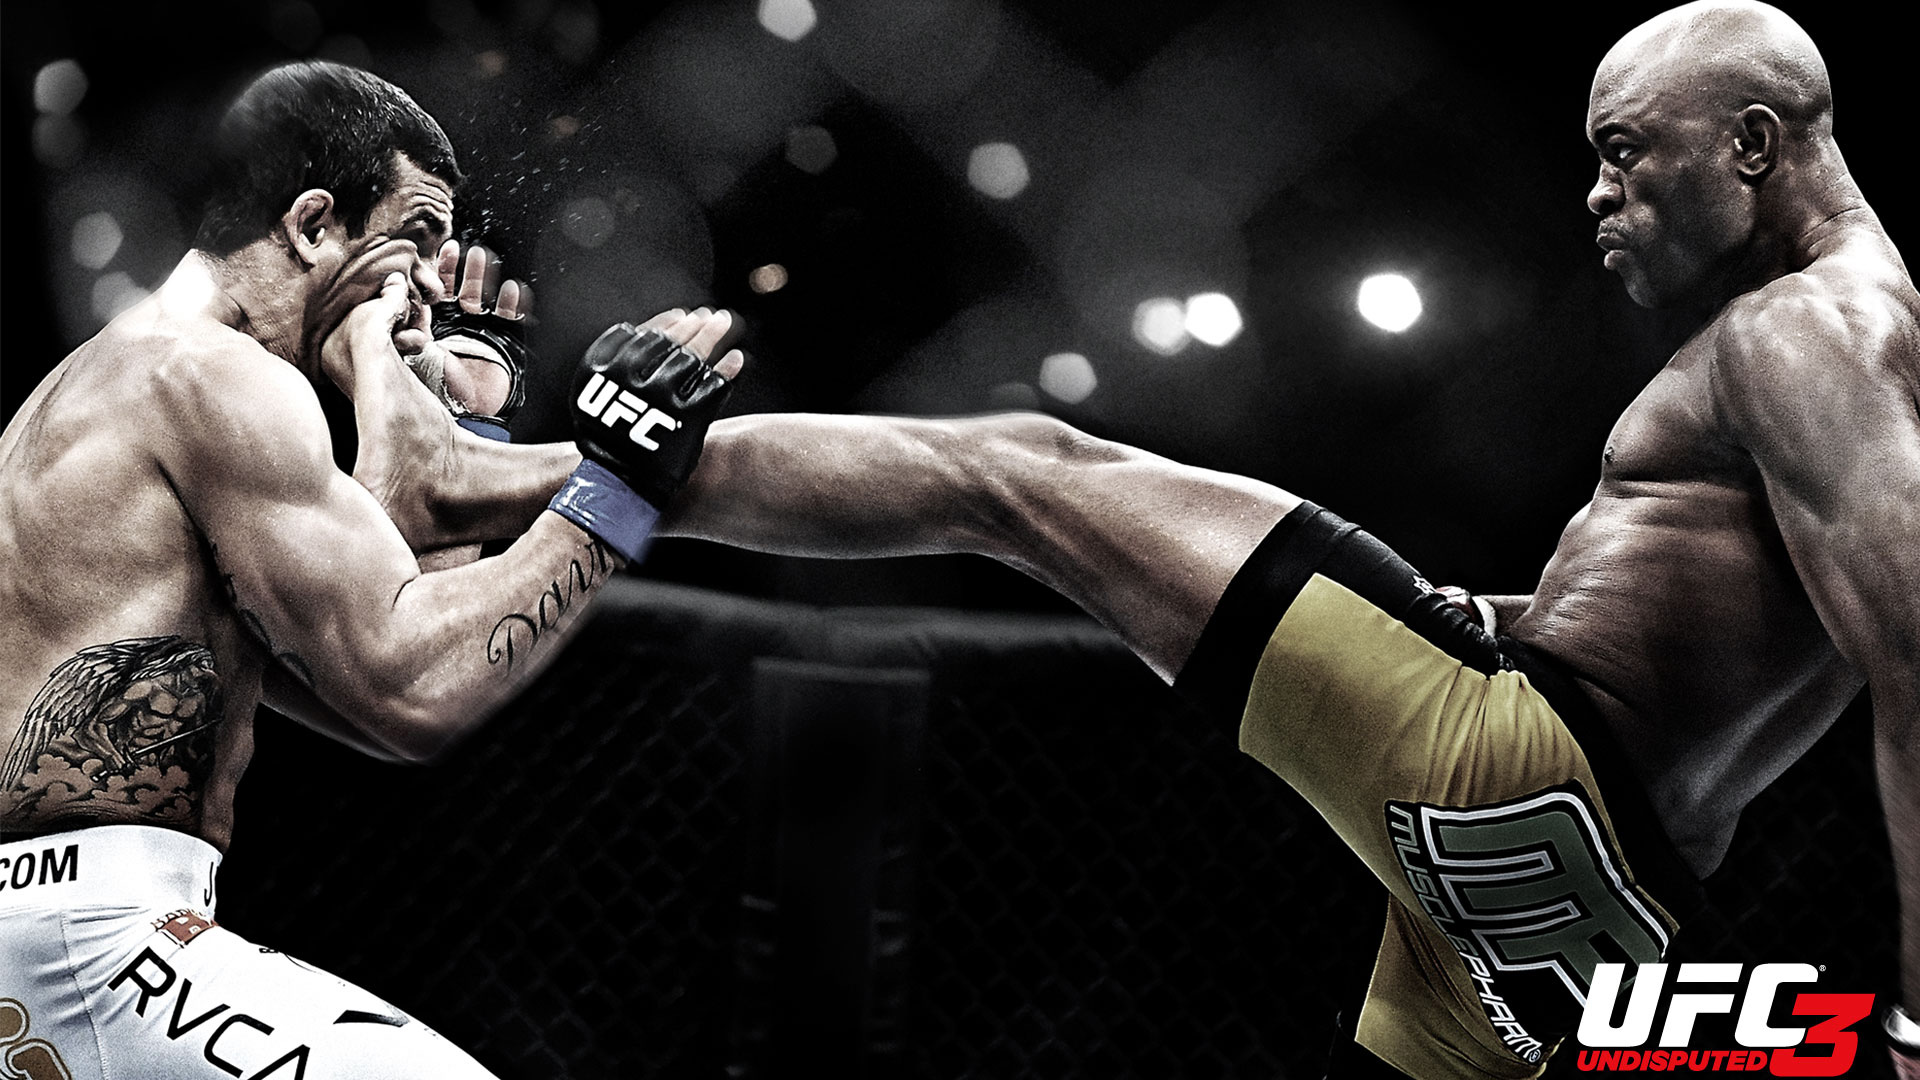 UFC 1920x1080 All Images   top downloads page 1 1920x1080